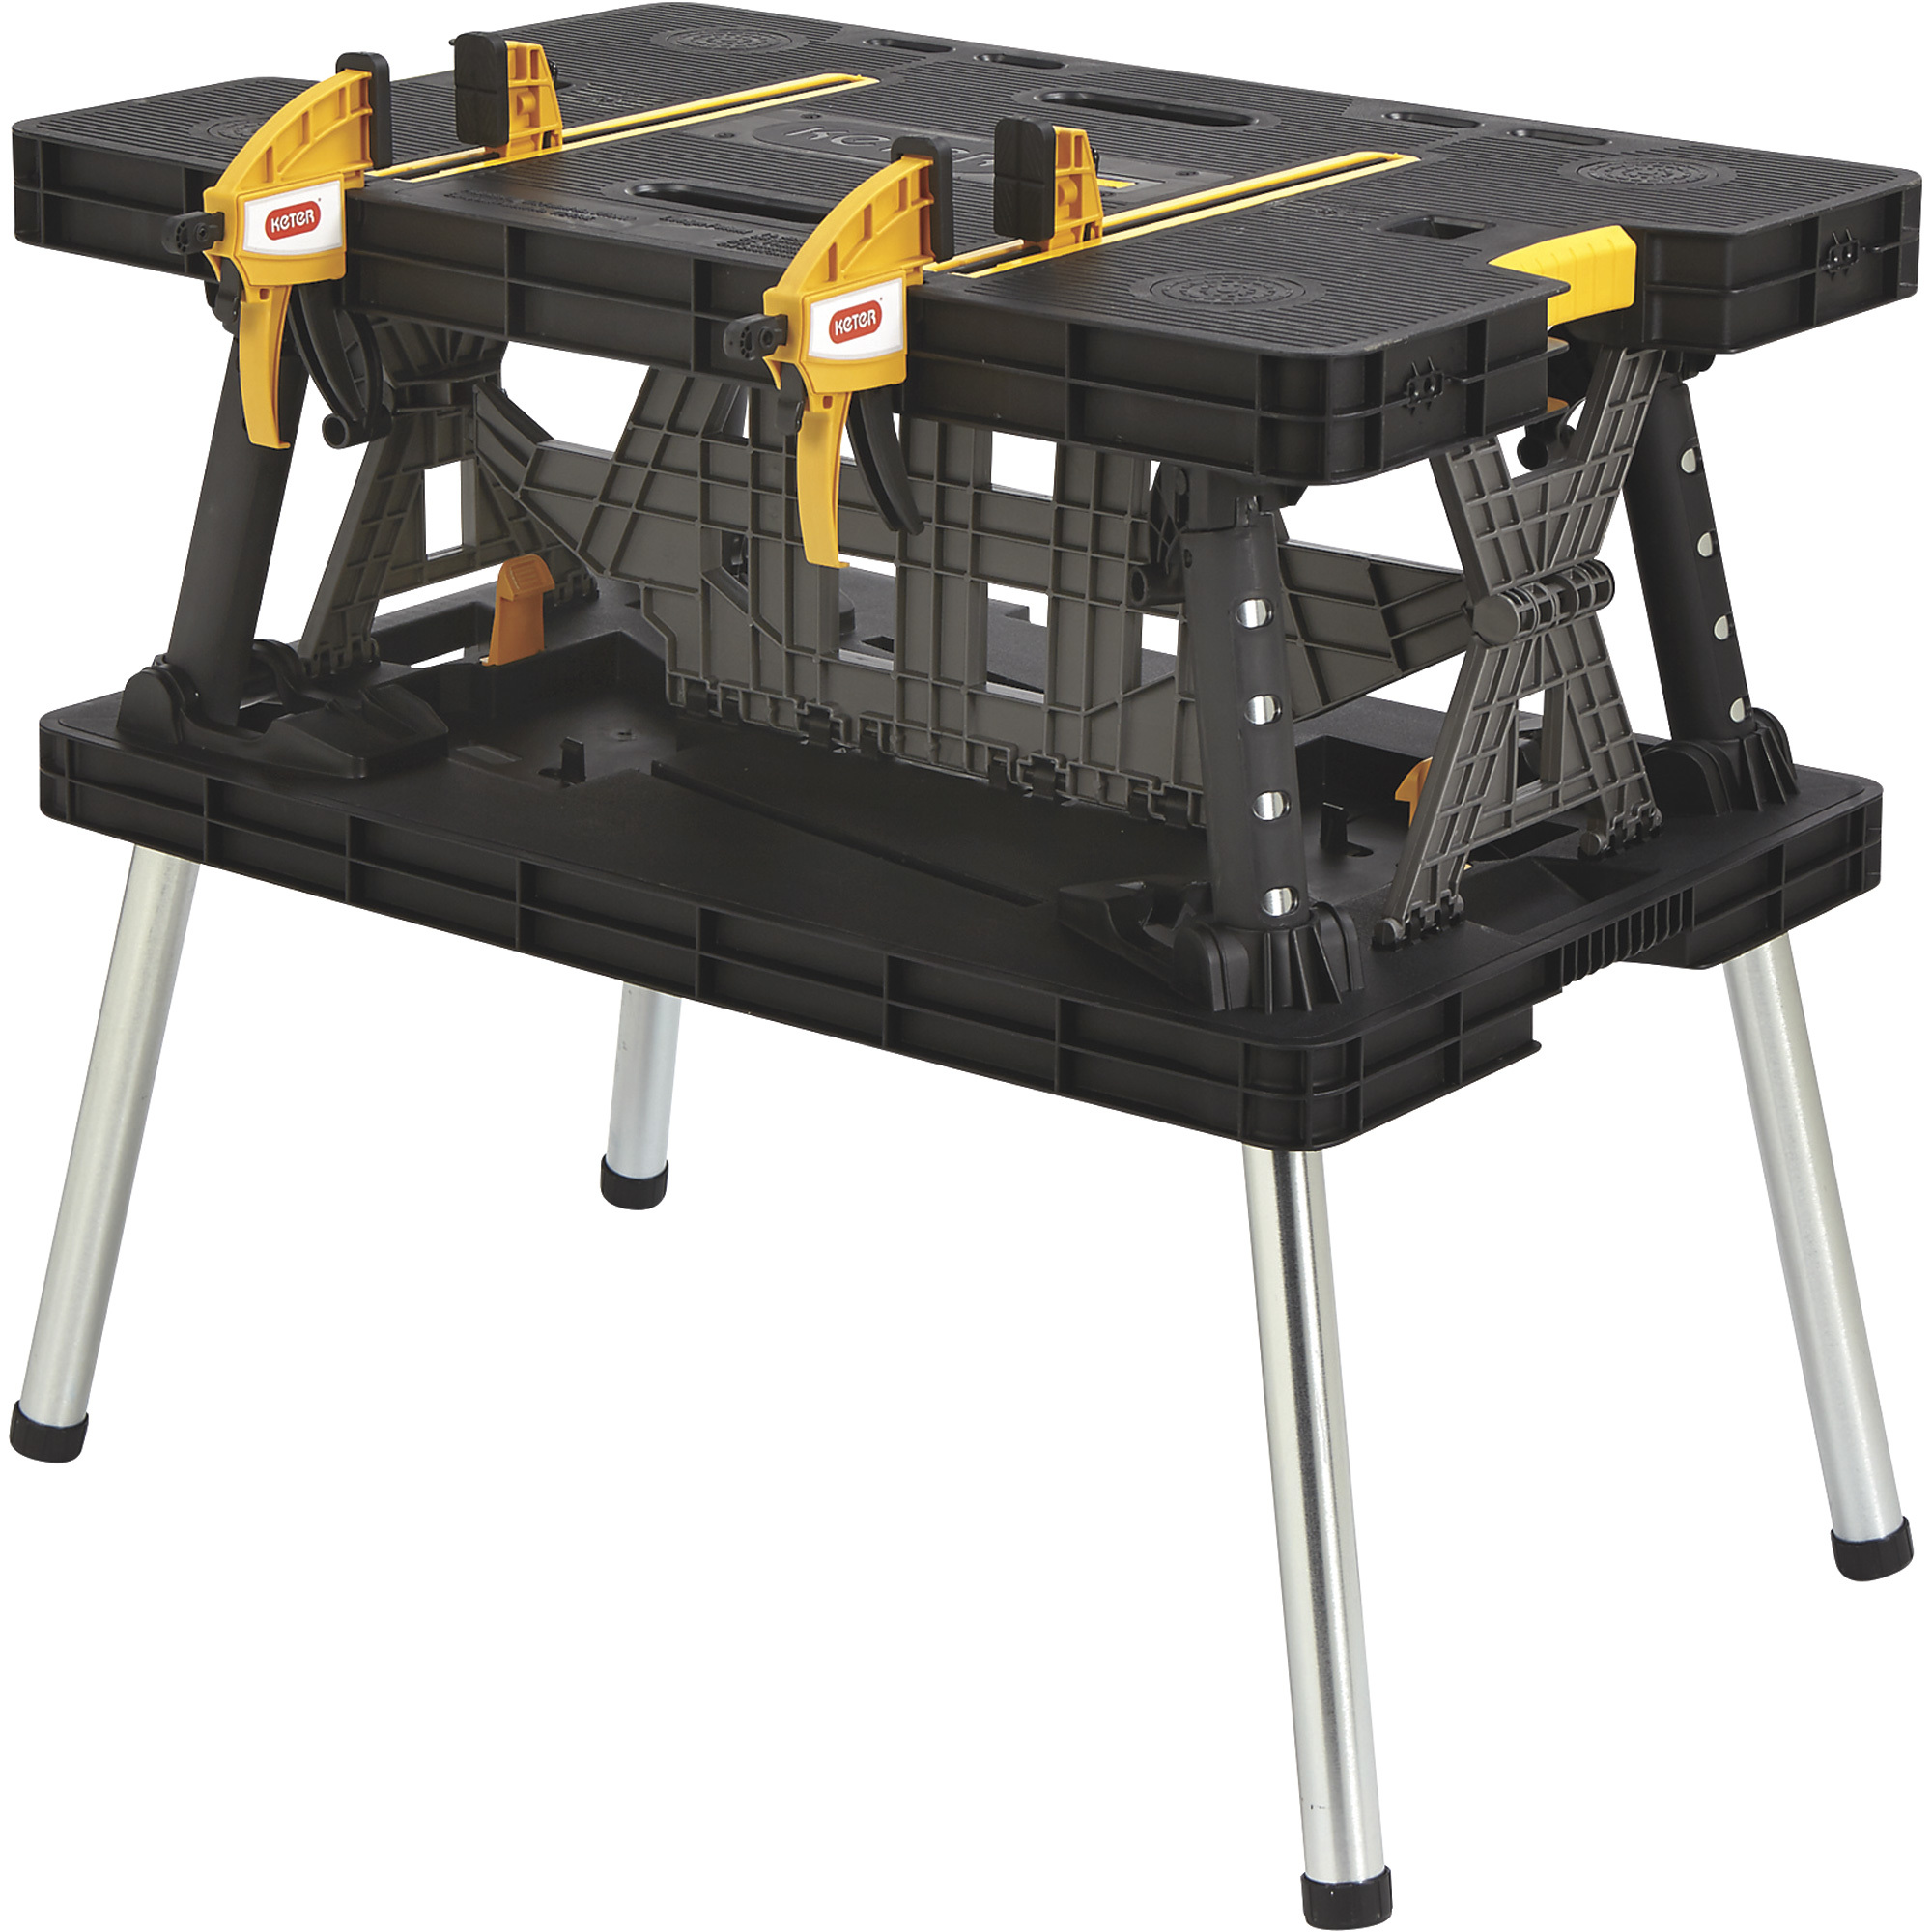 Free Shipping Keter Folding Work Table 33 1 2in L X 21